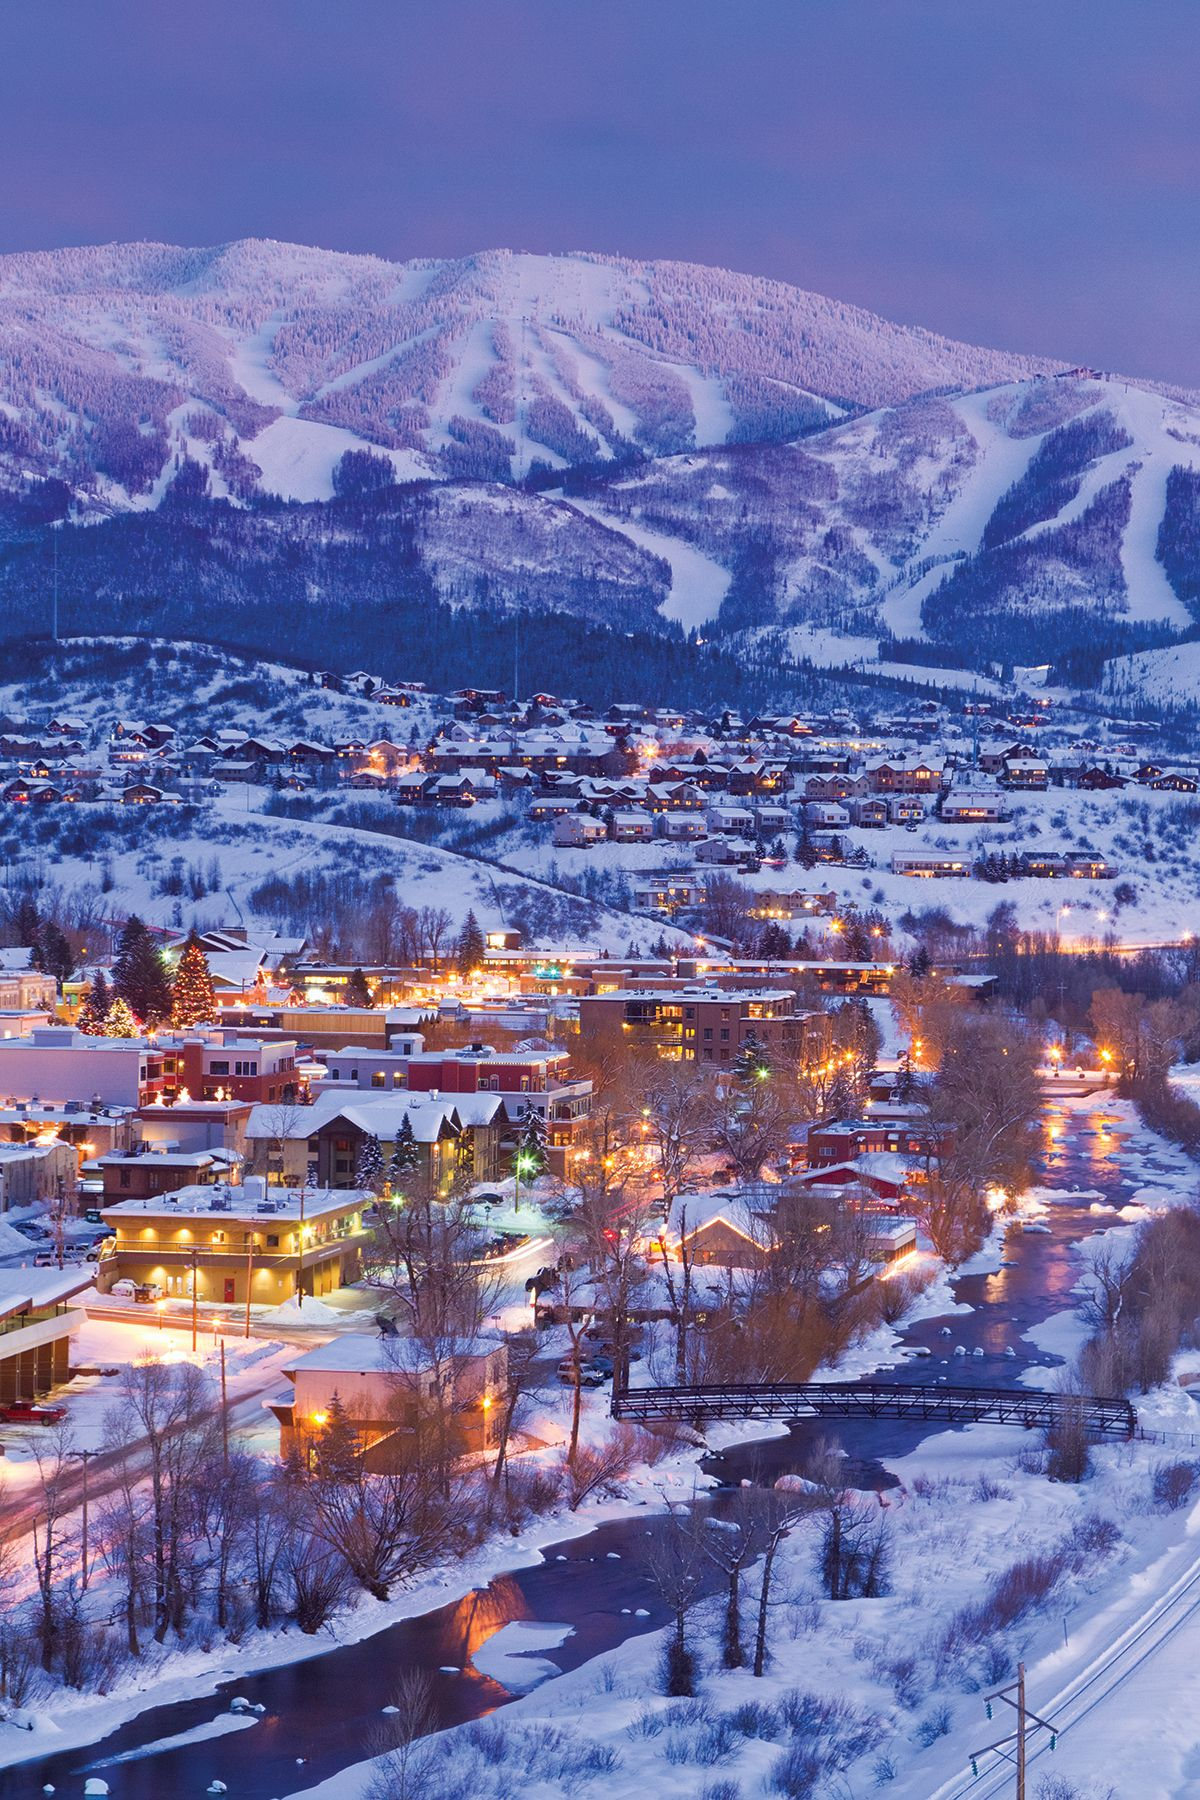 steamboat springs Compare 745 hotels in steamboat springs using 4049 real guest reviews earn free nights and get our price guarantee - booking has never been easier on hotelscom.